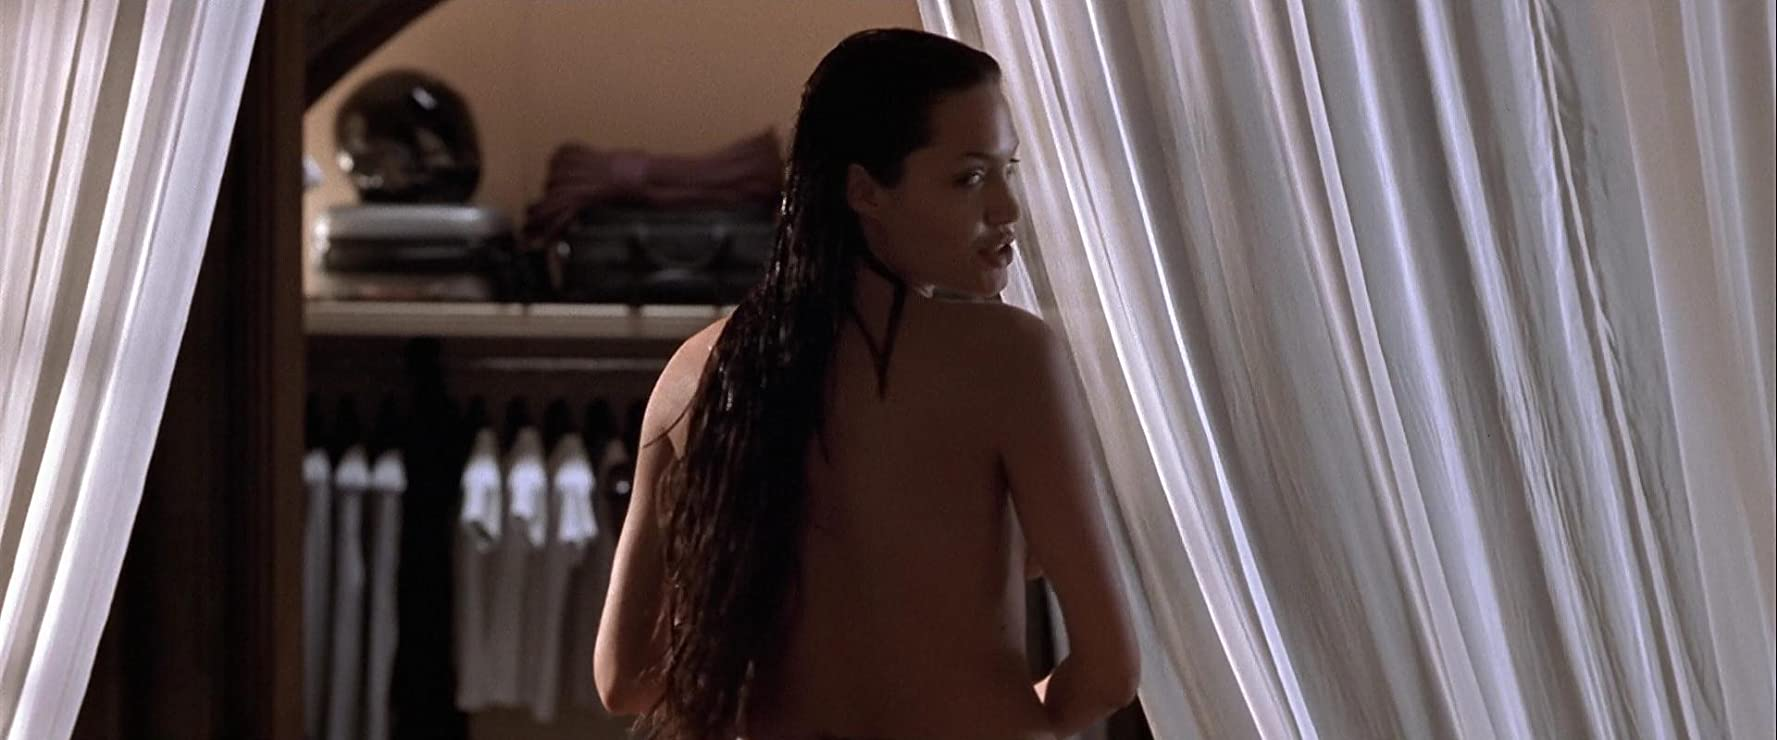 Angelina jolie naked in tomb raider